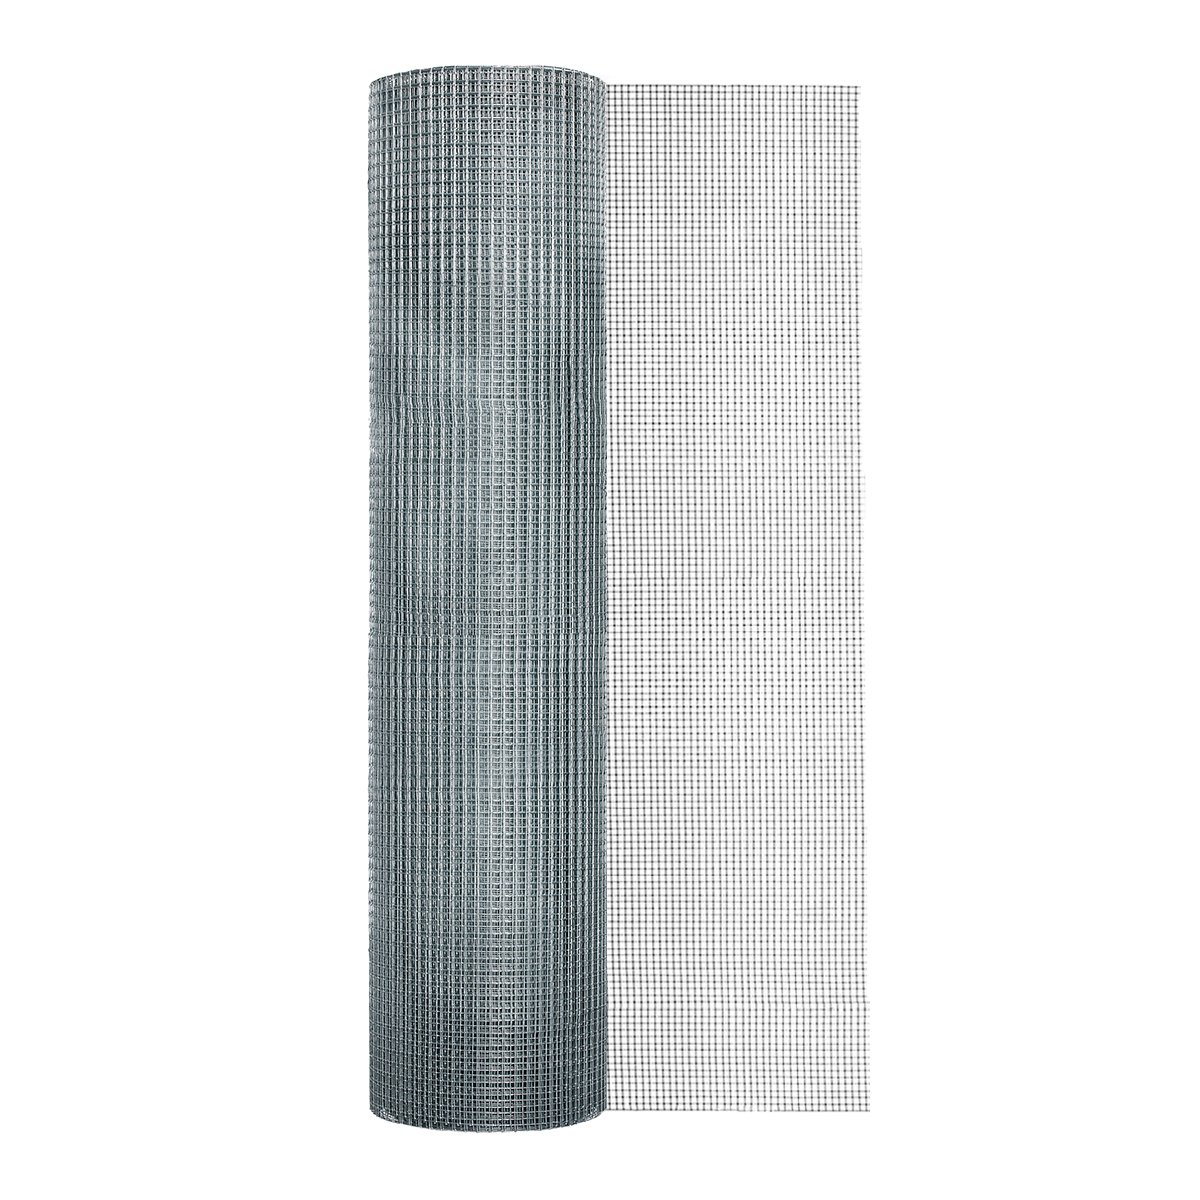 Garden Zone 48 Inches x 100 Feet - 1/4-Inch Openings 23 Gauge - Galvanized Rolled Mesh Hardware Cloth - For Fencing Around Chicken Coop, Run, and Gardens by Garden Zone